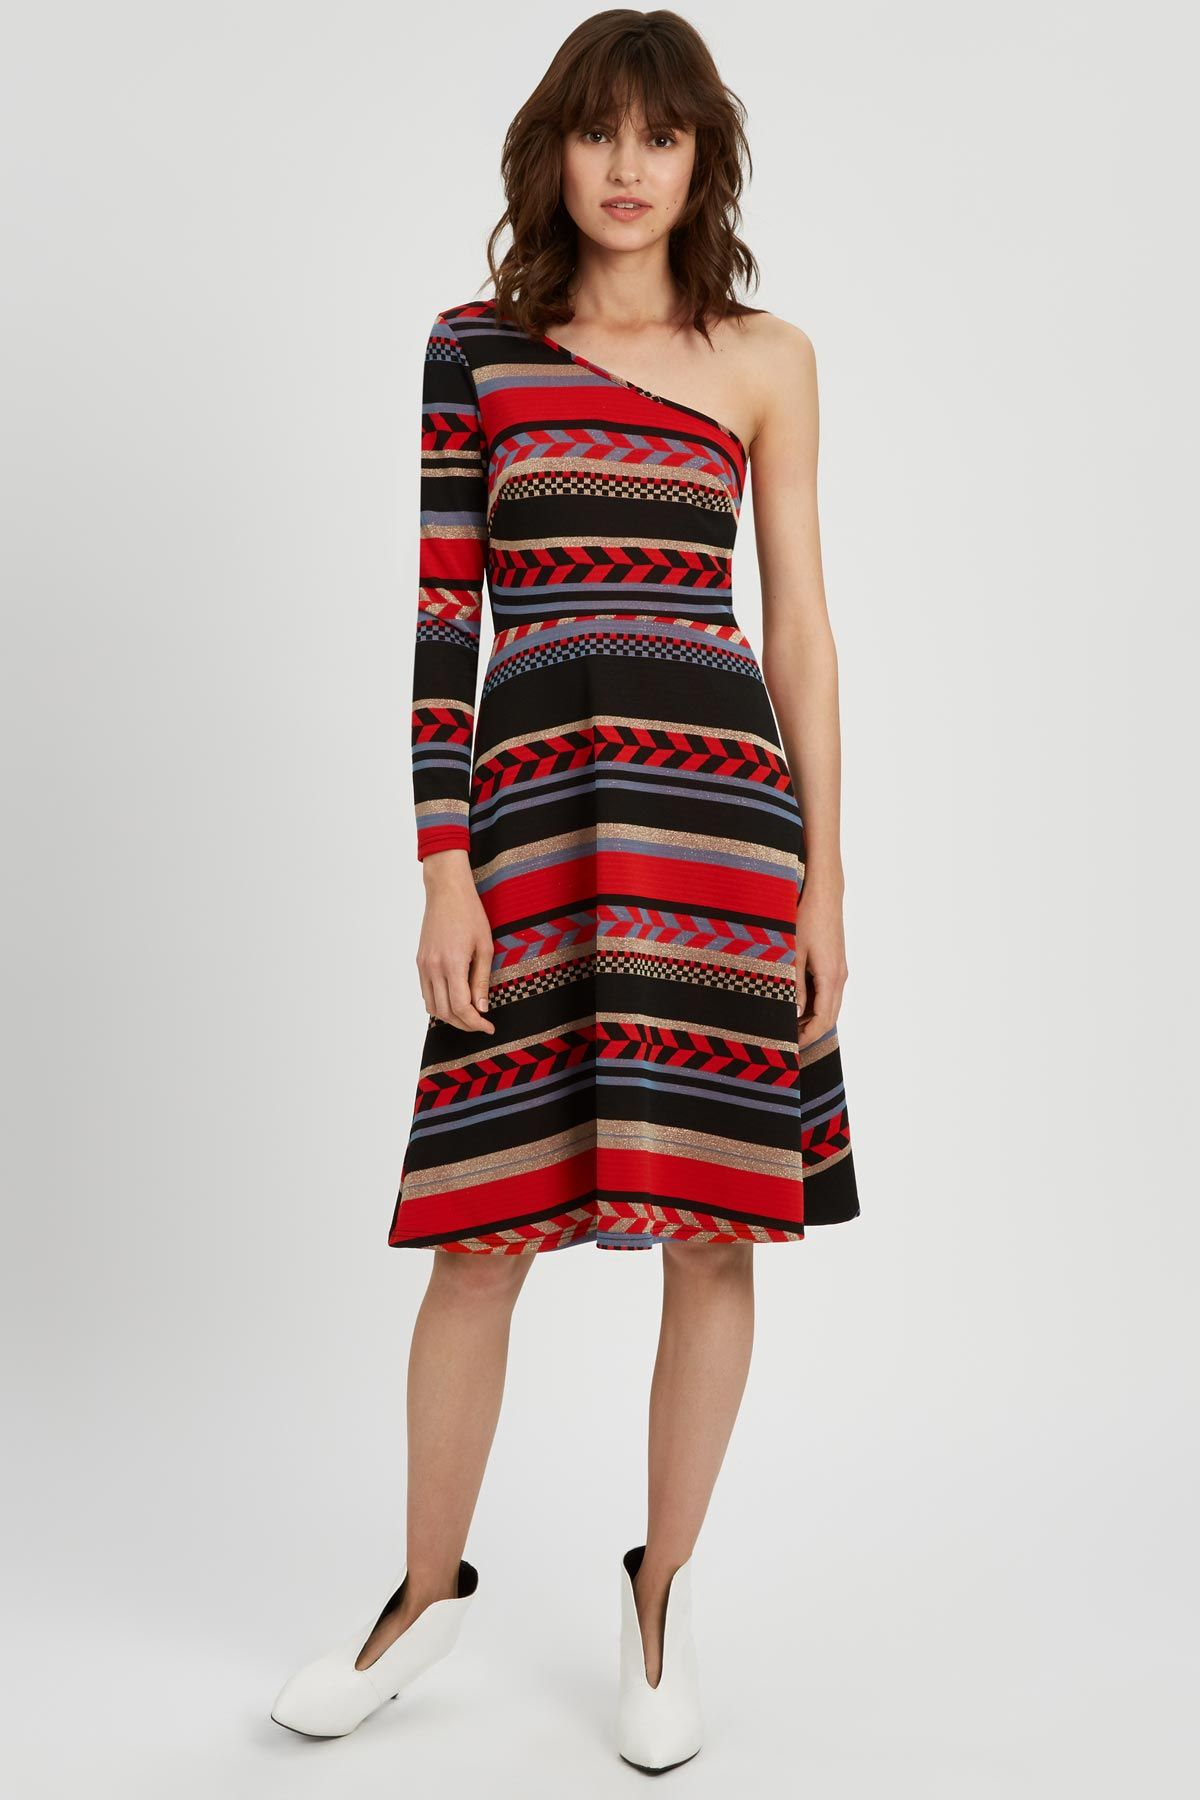 Debbie One Shoulder Midi Party Dress in Red